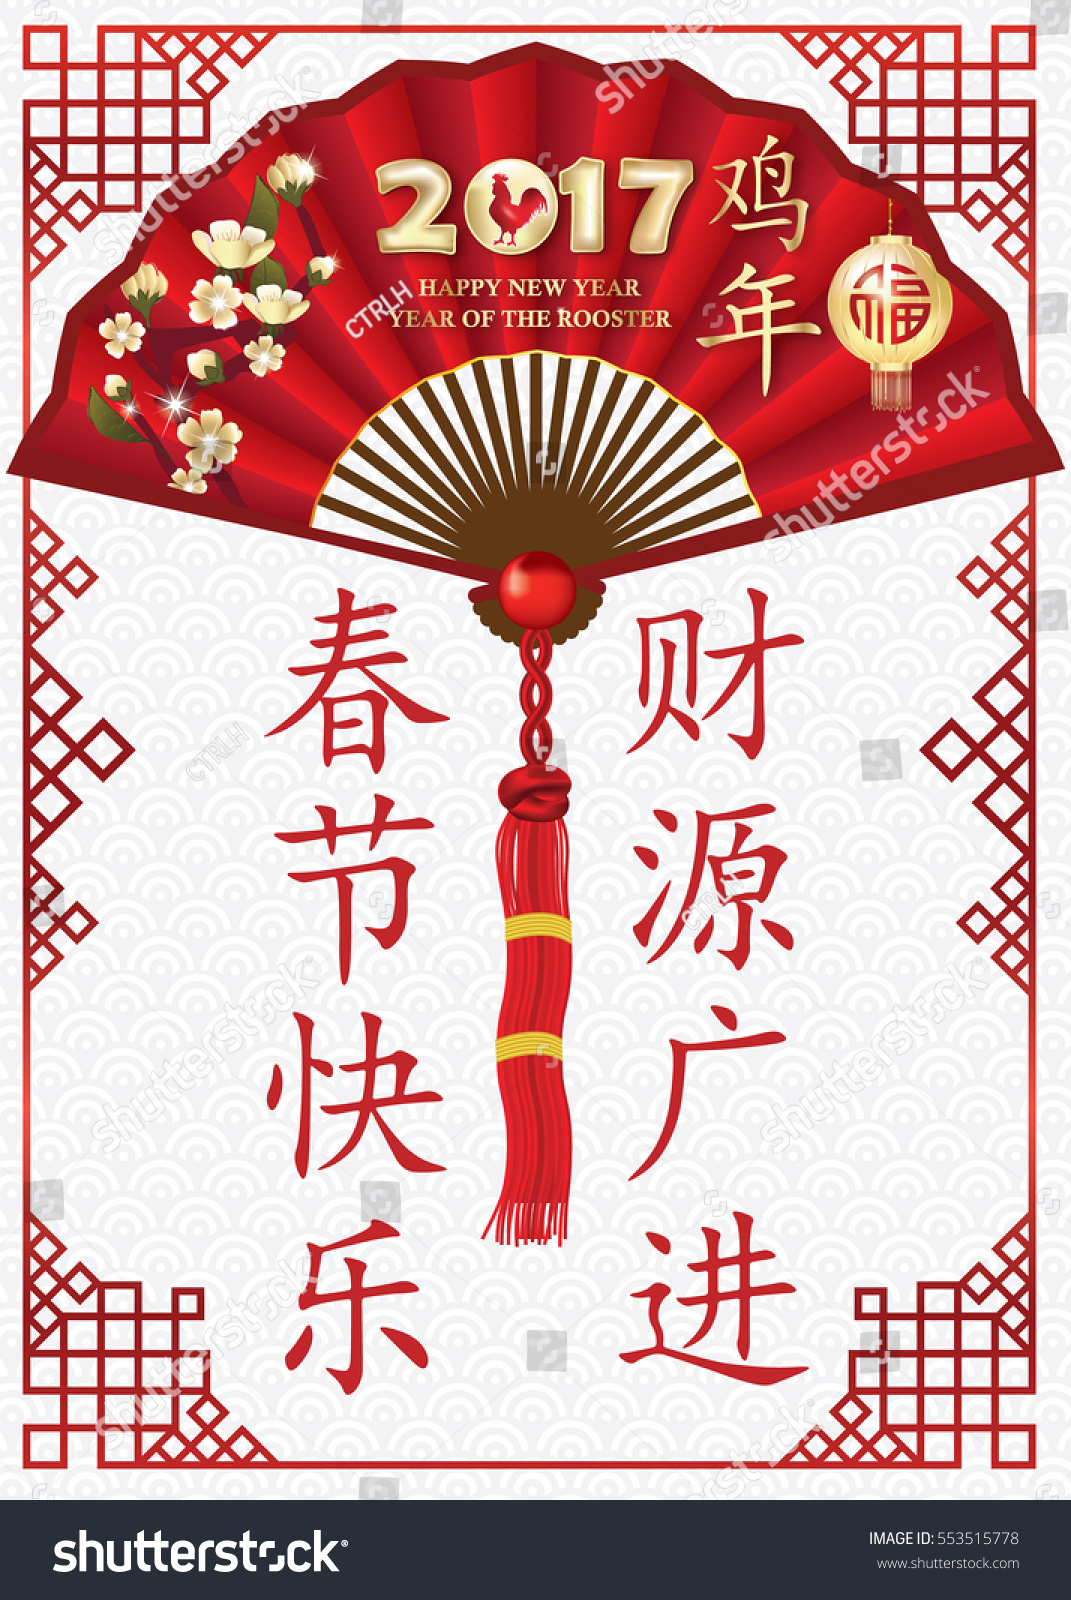 Business Greeting Card Chinese New Year Stock Illustration 553515778